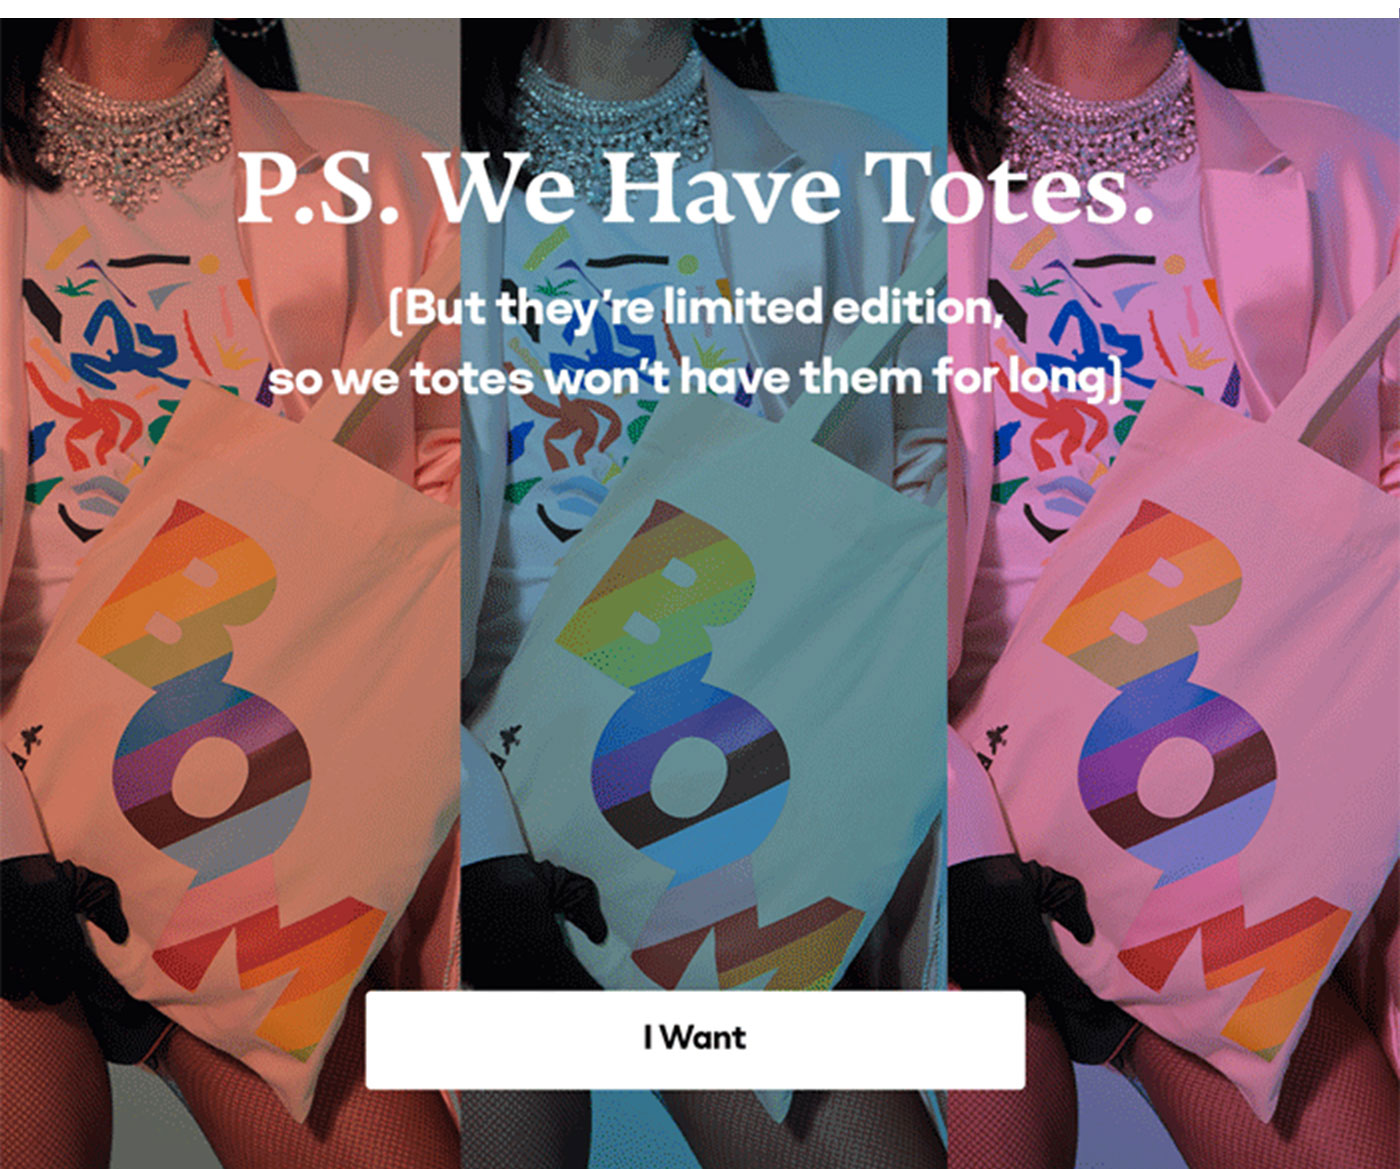 P.S. We Have Totes. | (But they're limited edition, so we won't have them for long) | I Want